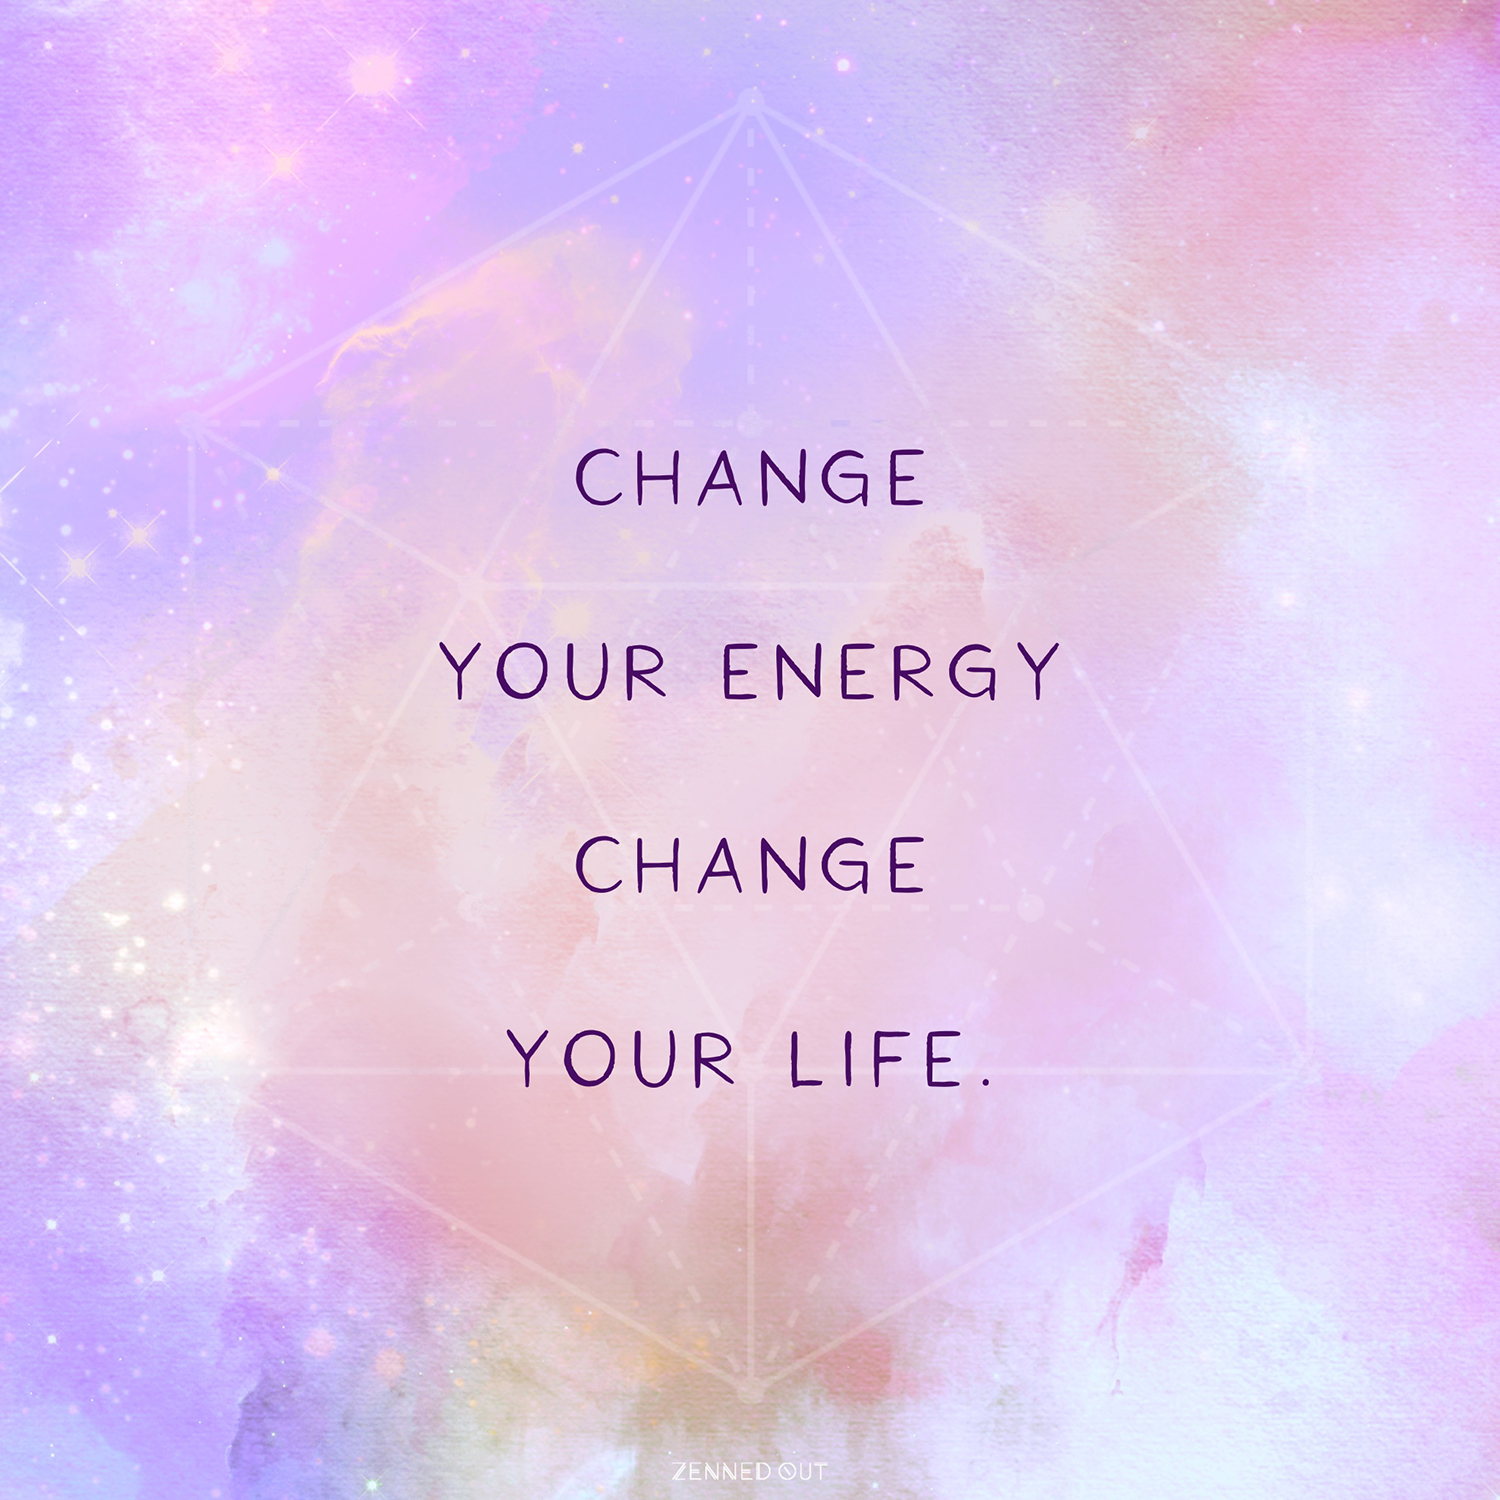 change-your-energy-change-your-life-quote